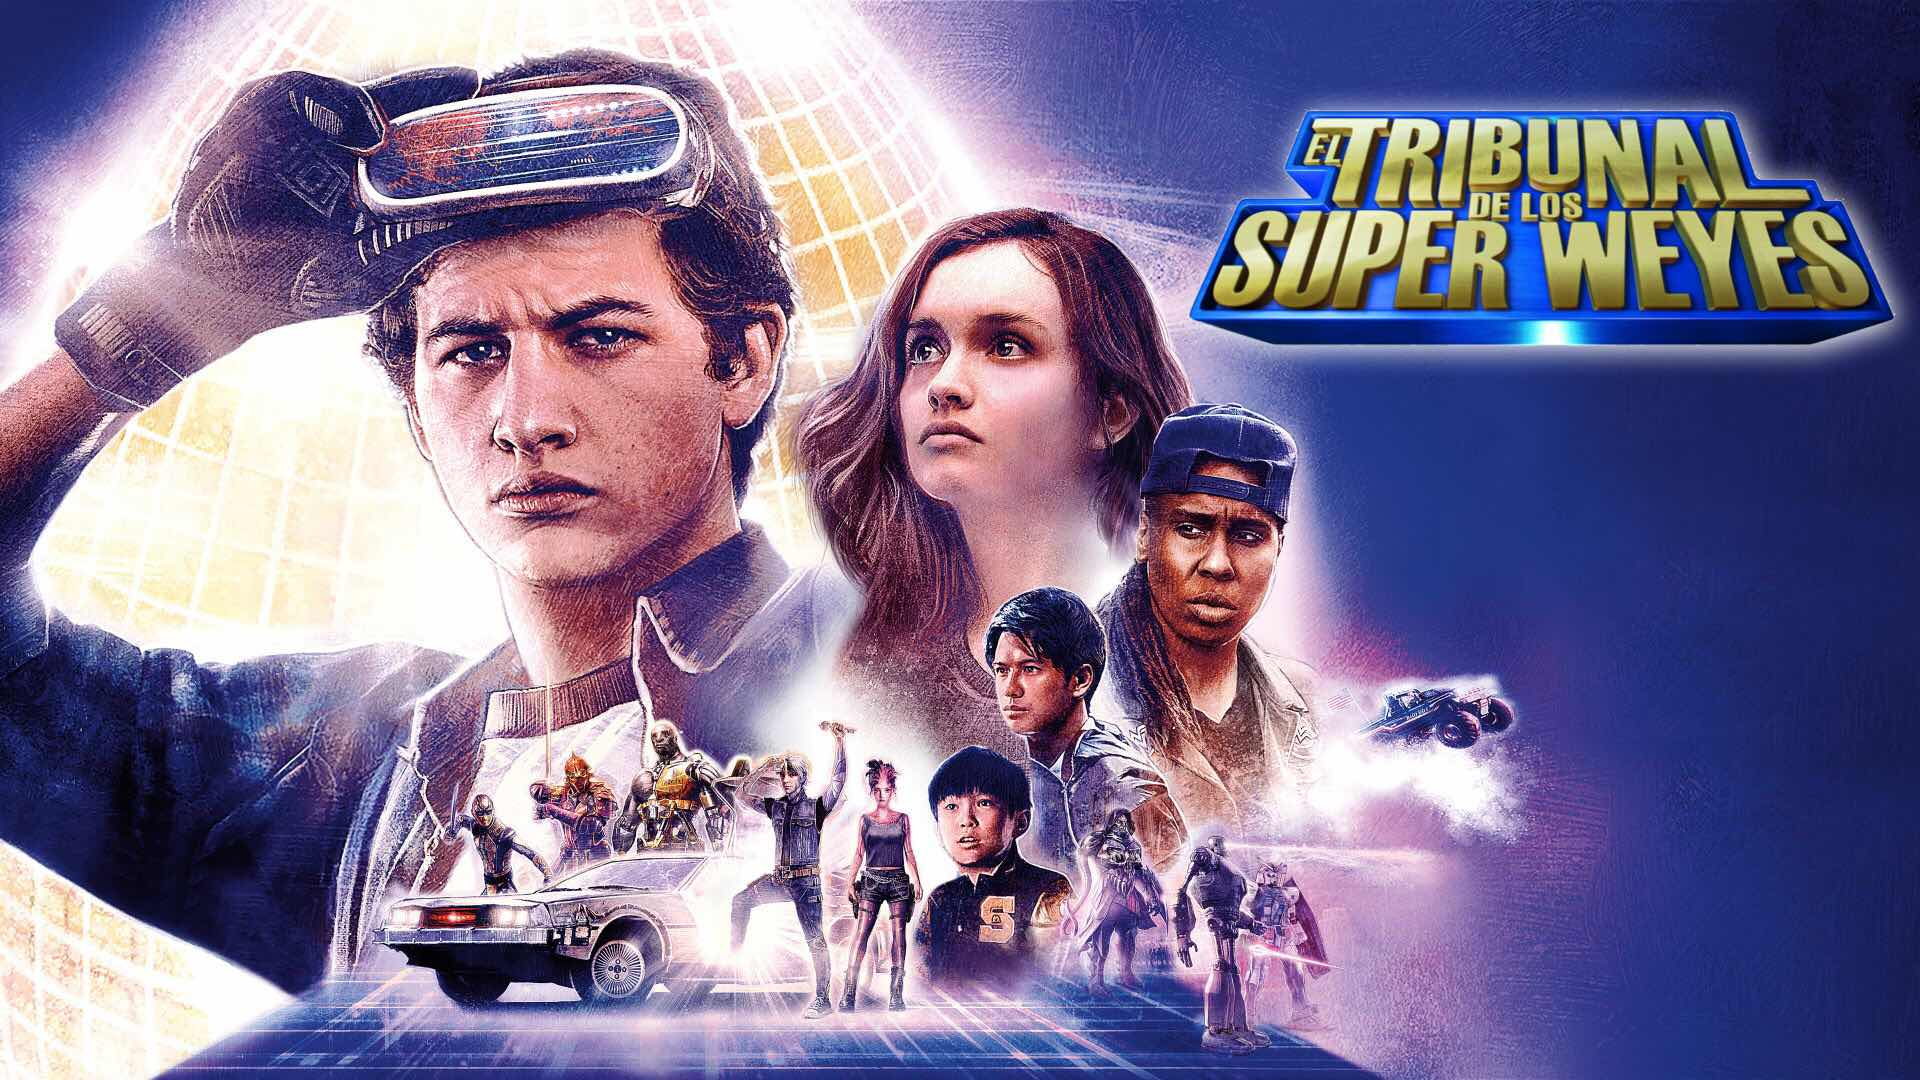 Ready Player One Superweyes